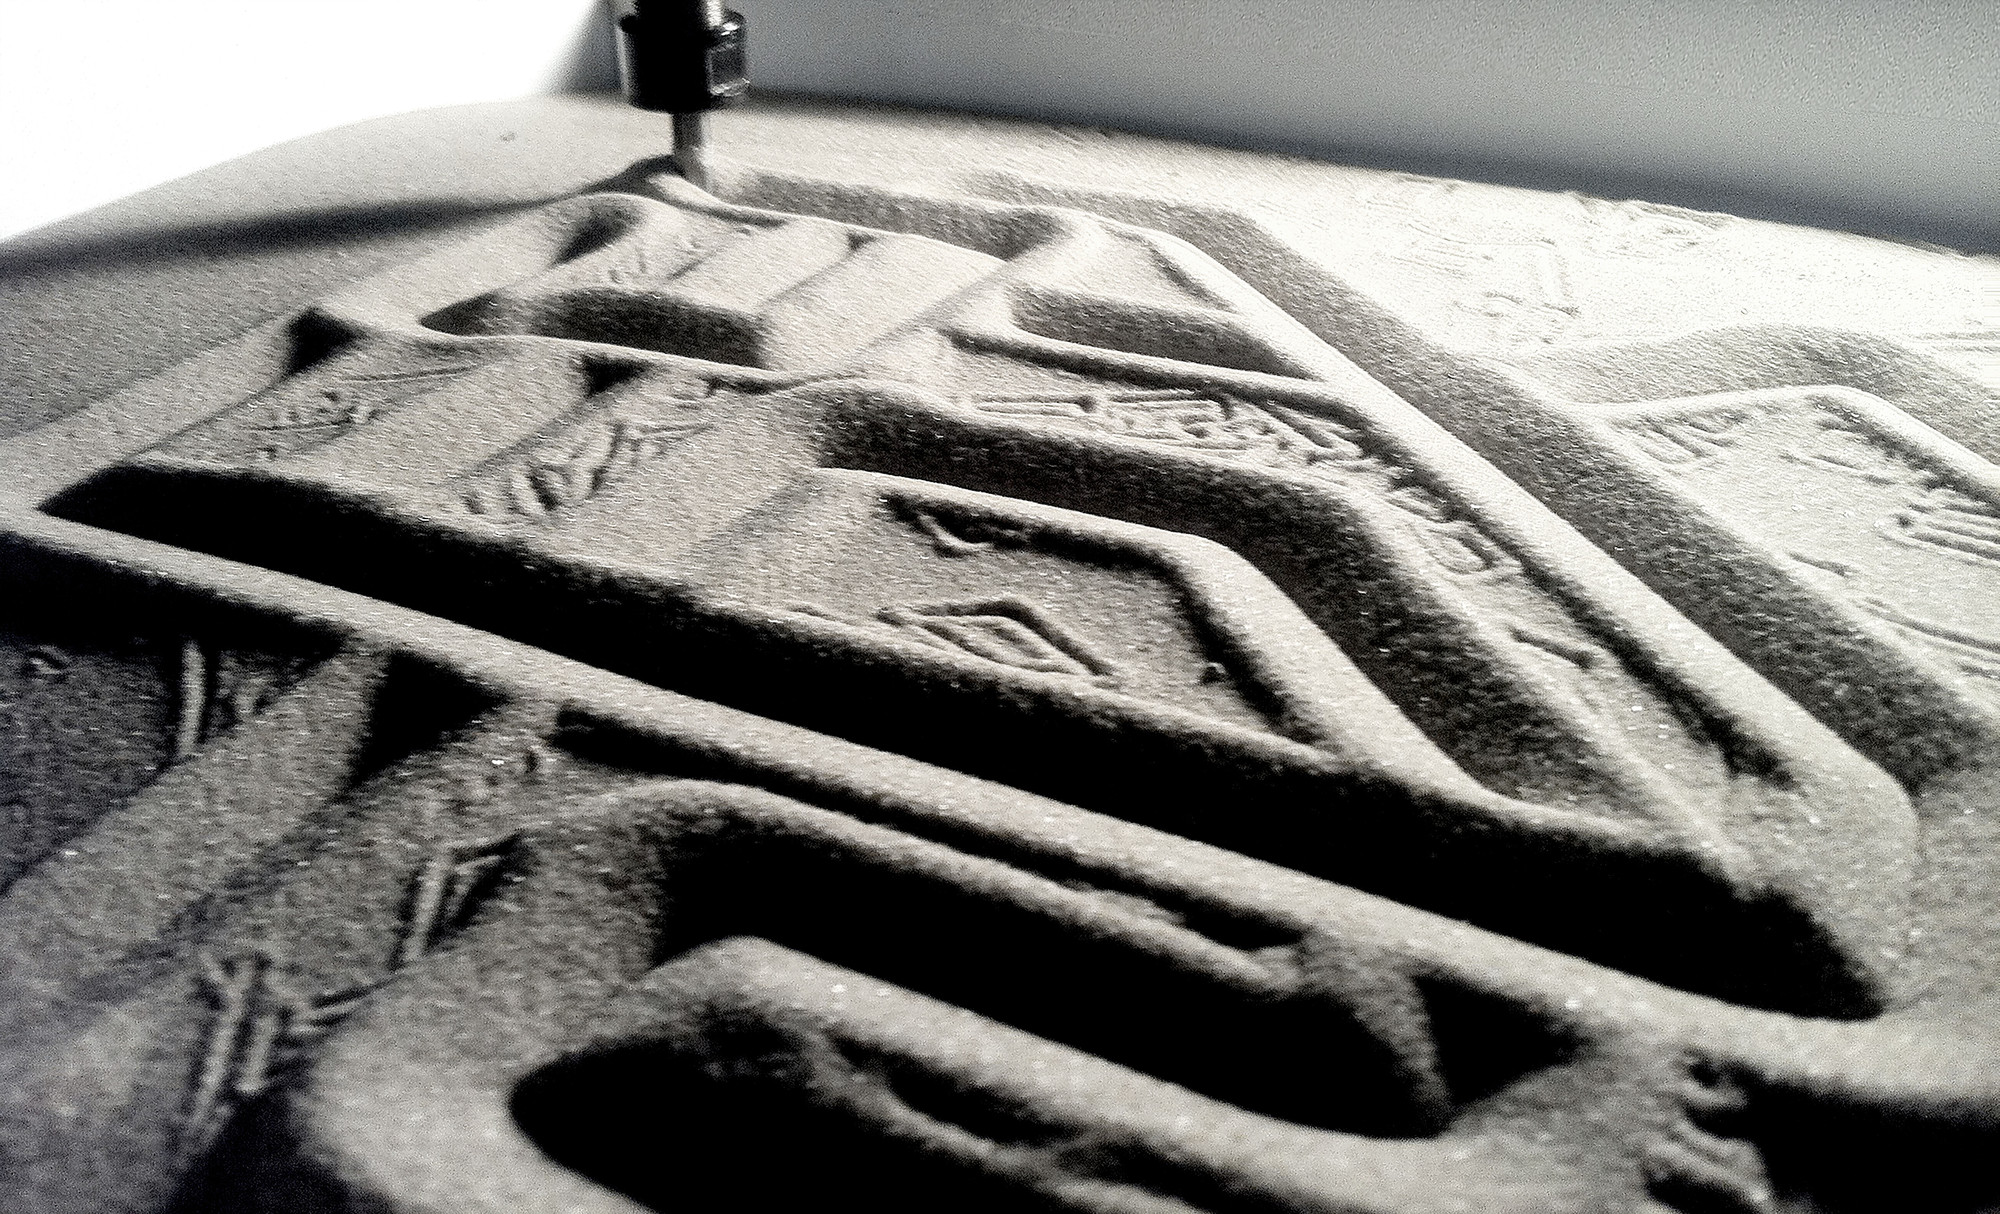 Printing on sand . Image © Edith Kofsky / The Israeli Pavilion 2014